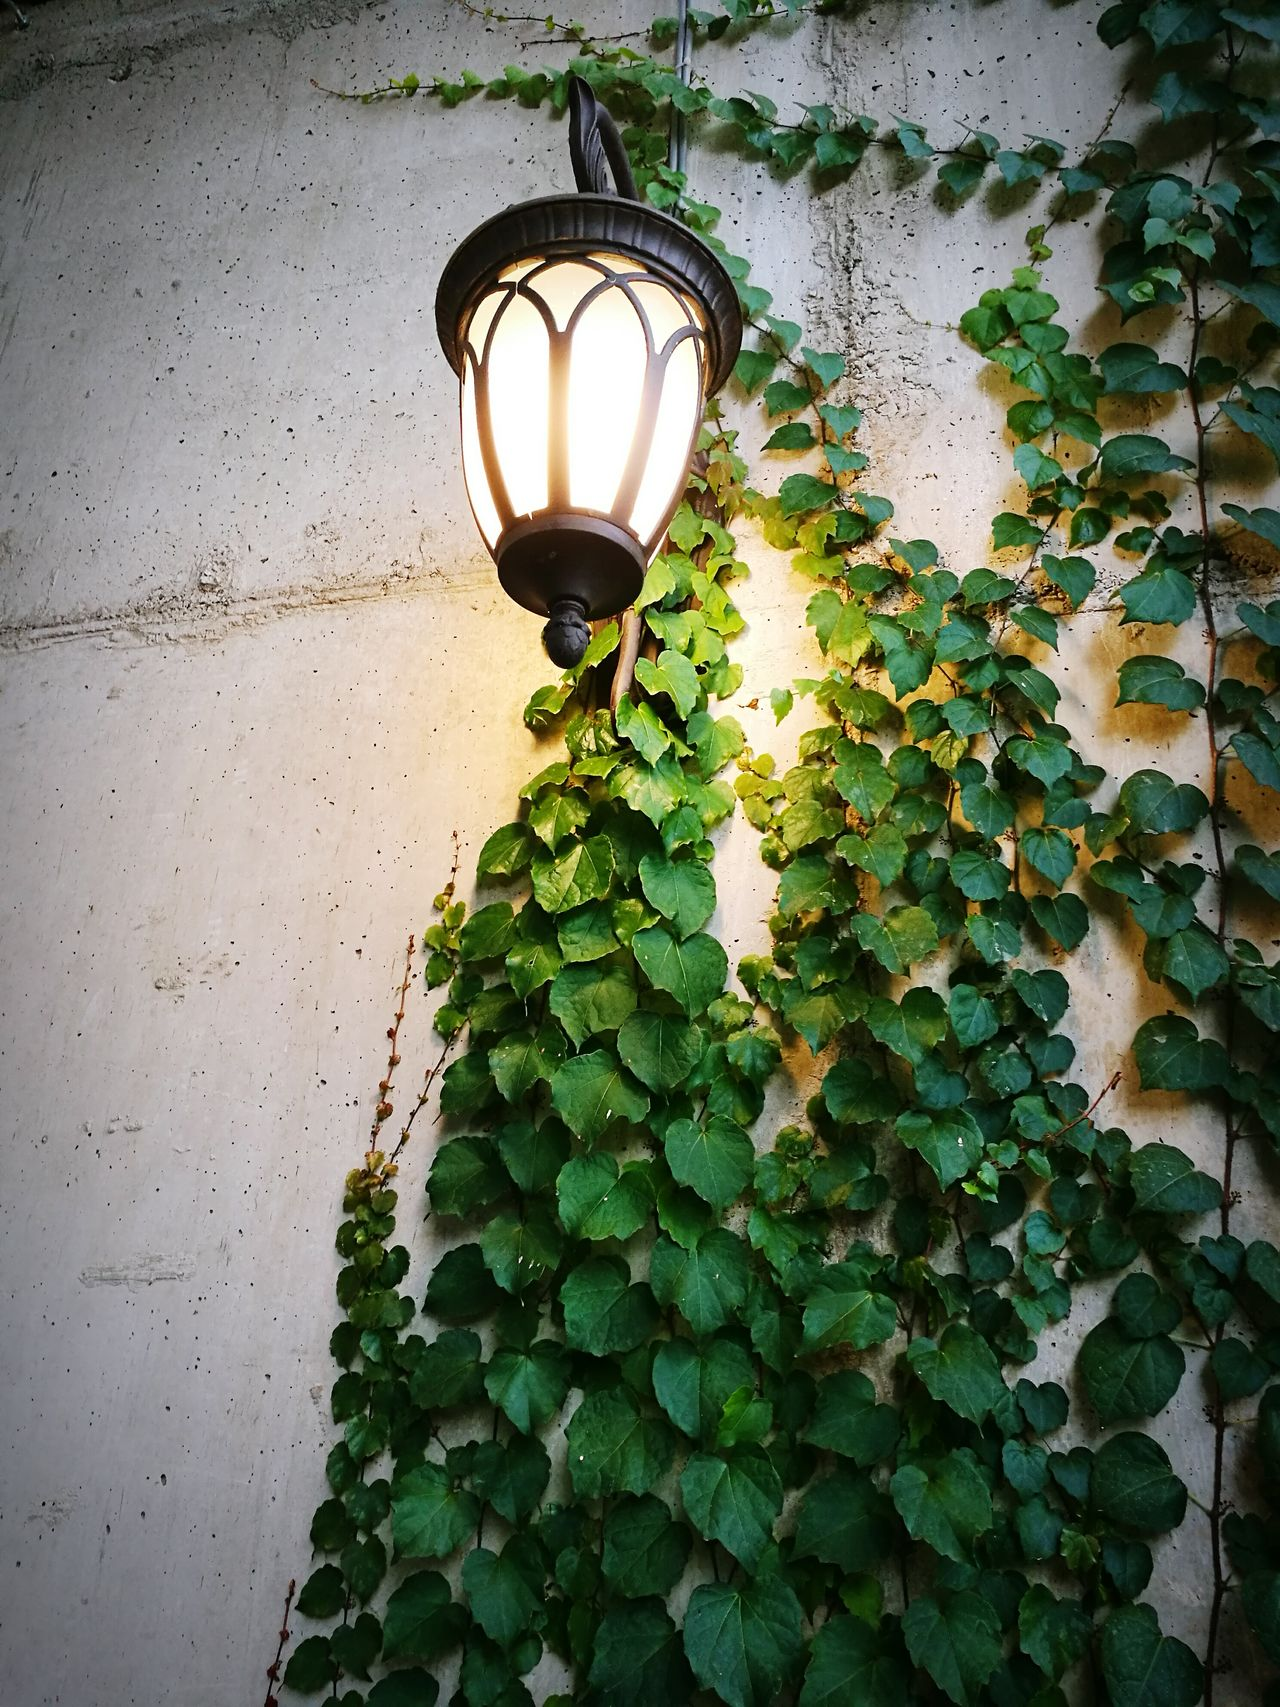 Lighting Equipment Street Light Plant Growth Low Angle View Leaf Illuminated Wall - Building Feature Green Color Electricity  Close-up Electric Light Lamp Electric Lamp Lamp Post Outdoors Street Lamp No People Creeper Freshness